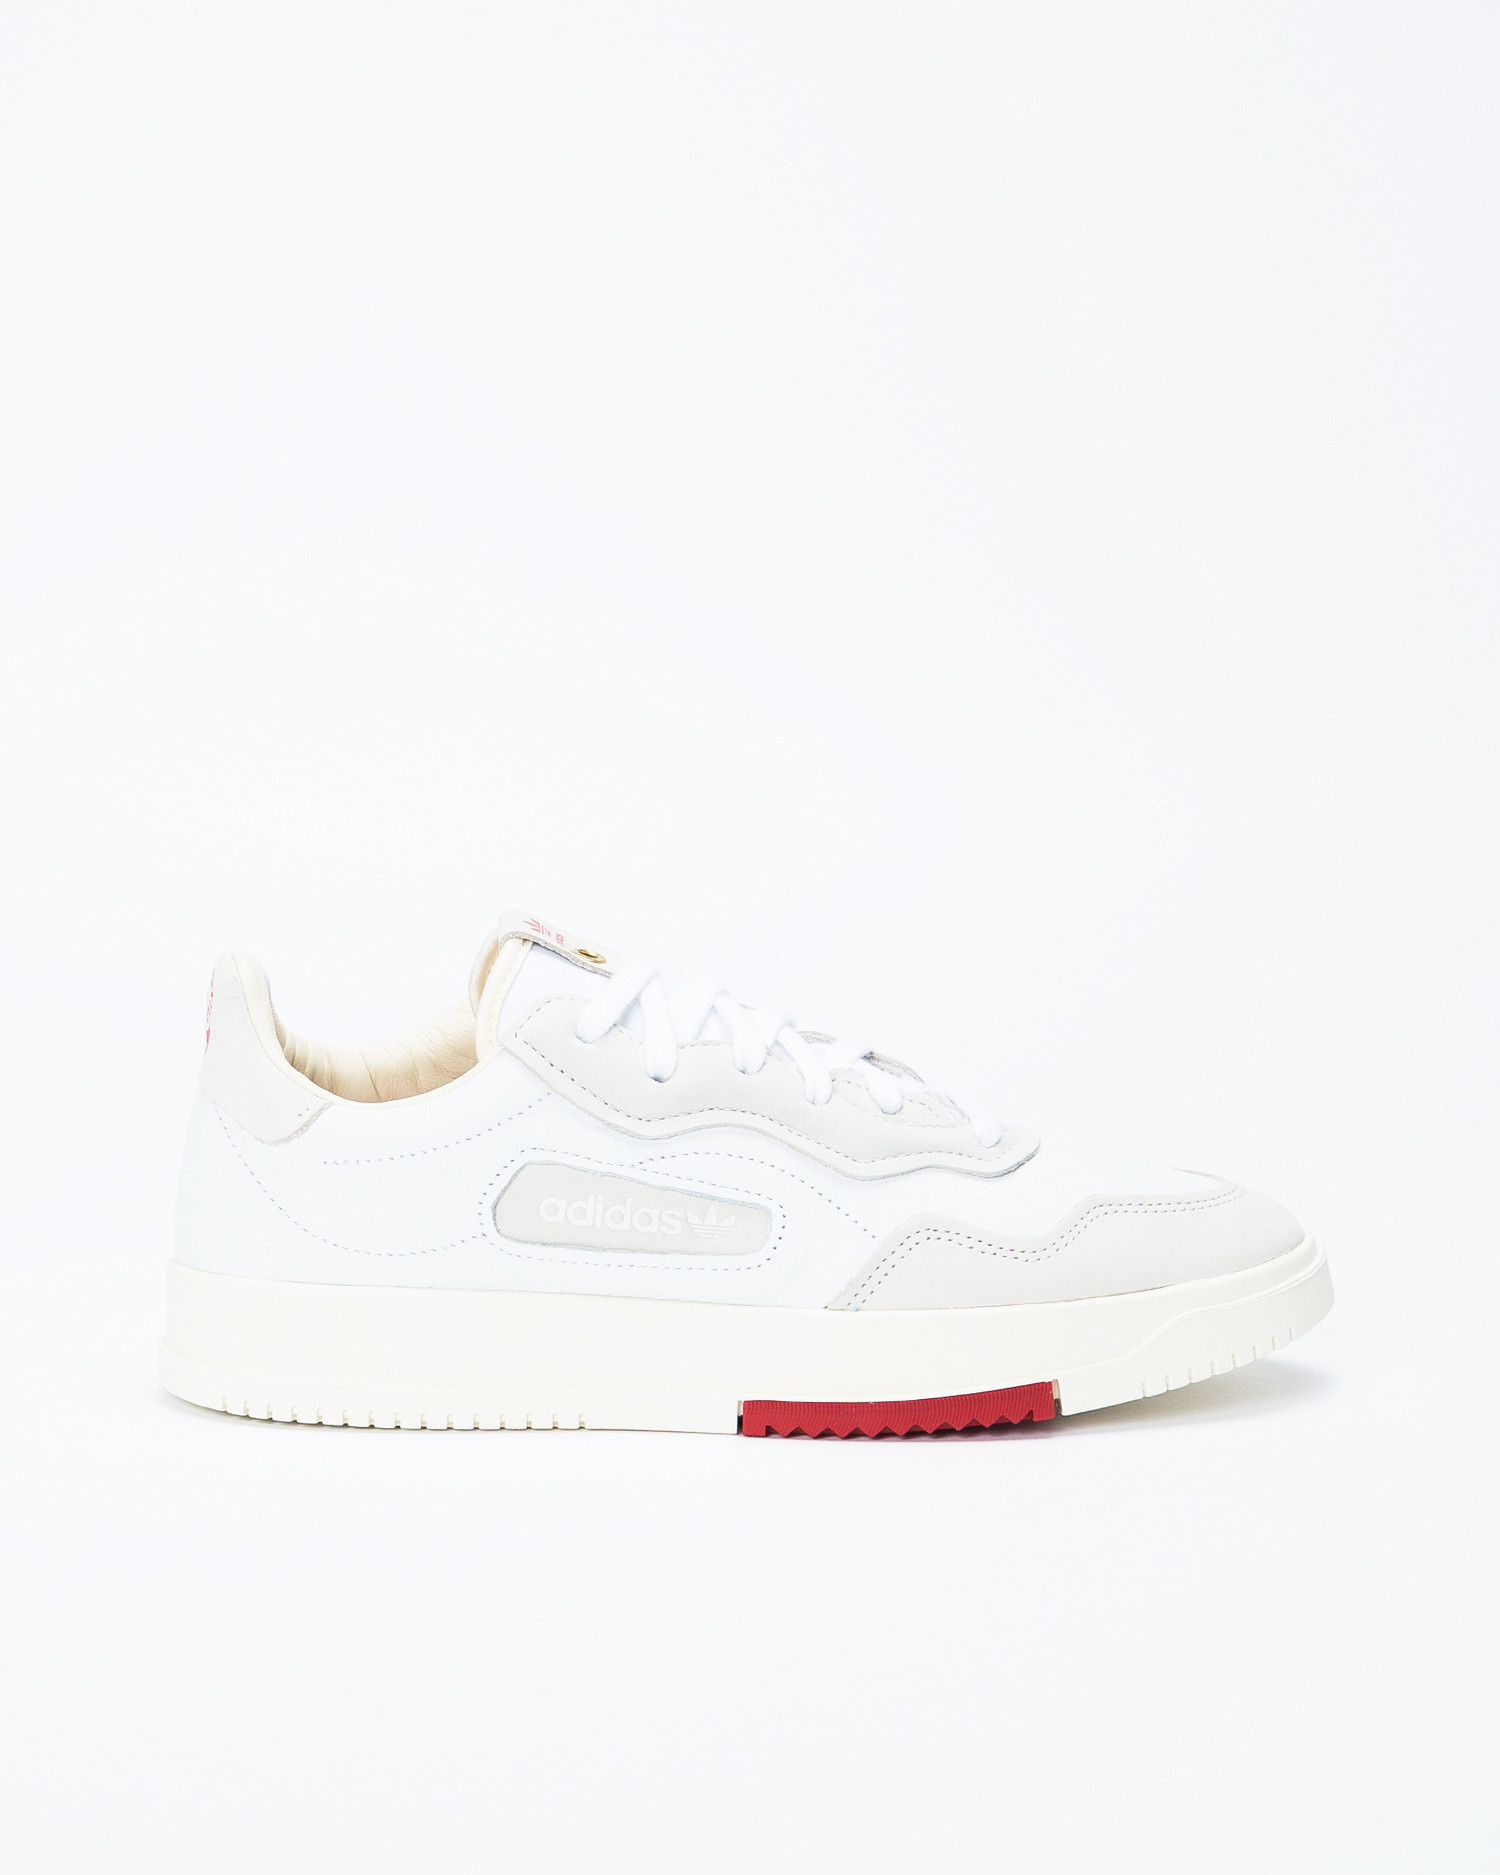 adidas Consortium x The Next Door SC Premiere footwear white/footwear white/gold metallic